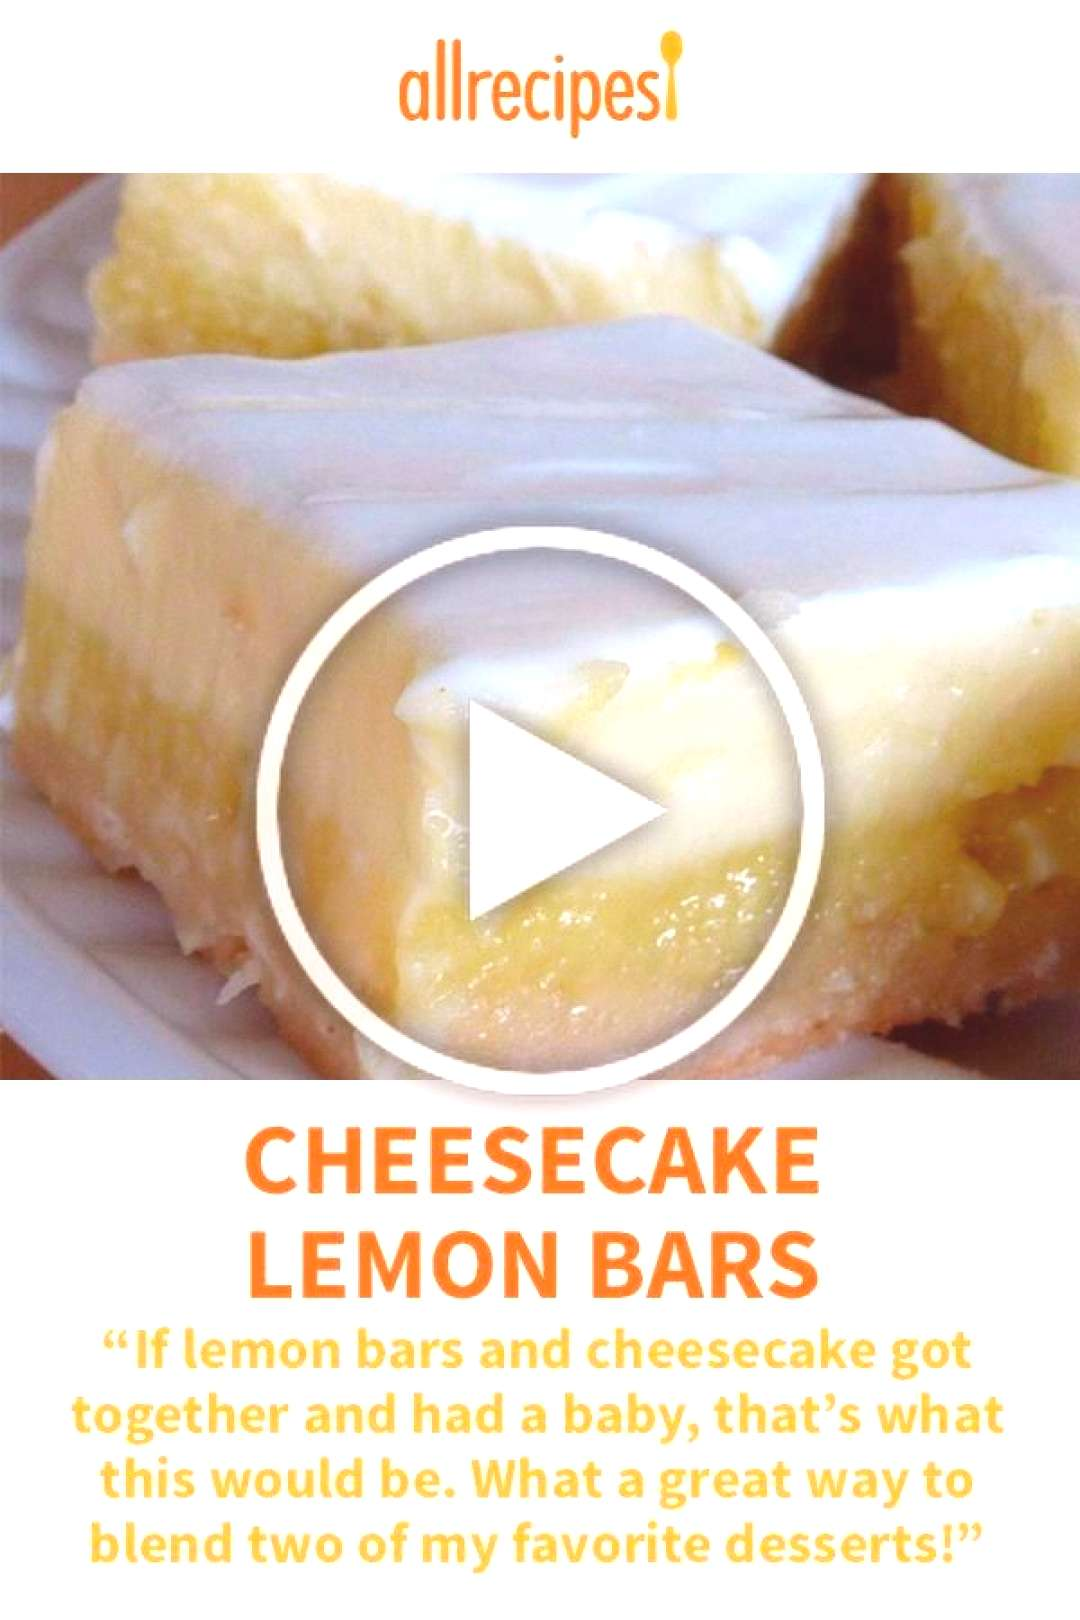 Cheesecake Lemon Bars | If lemon bars and cheesecake got together and had a baby, that's what thi